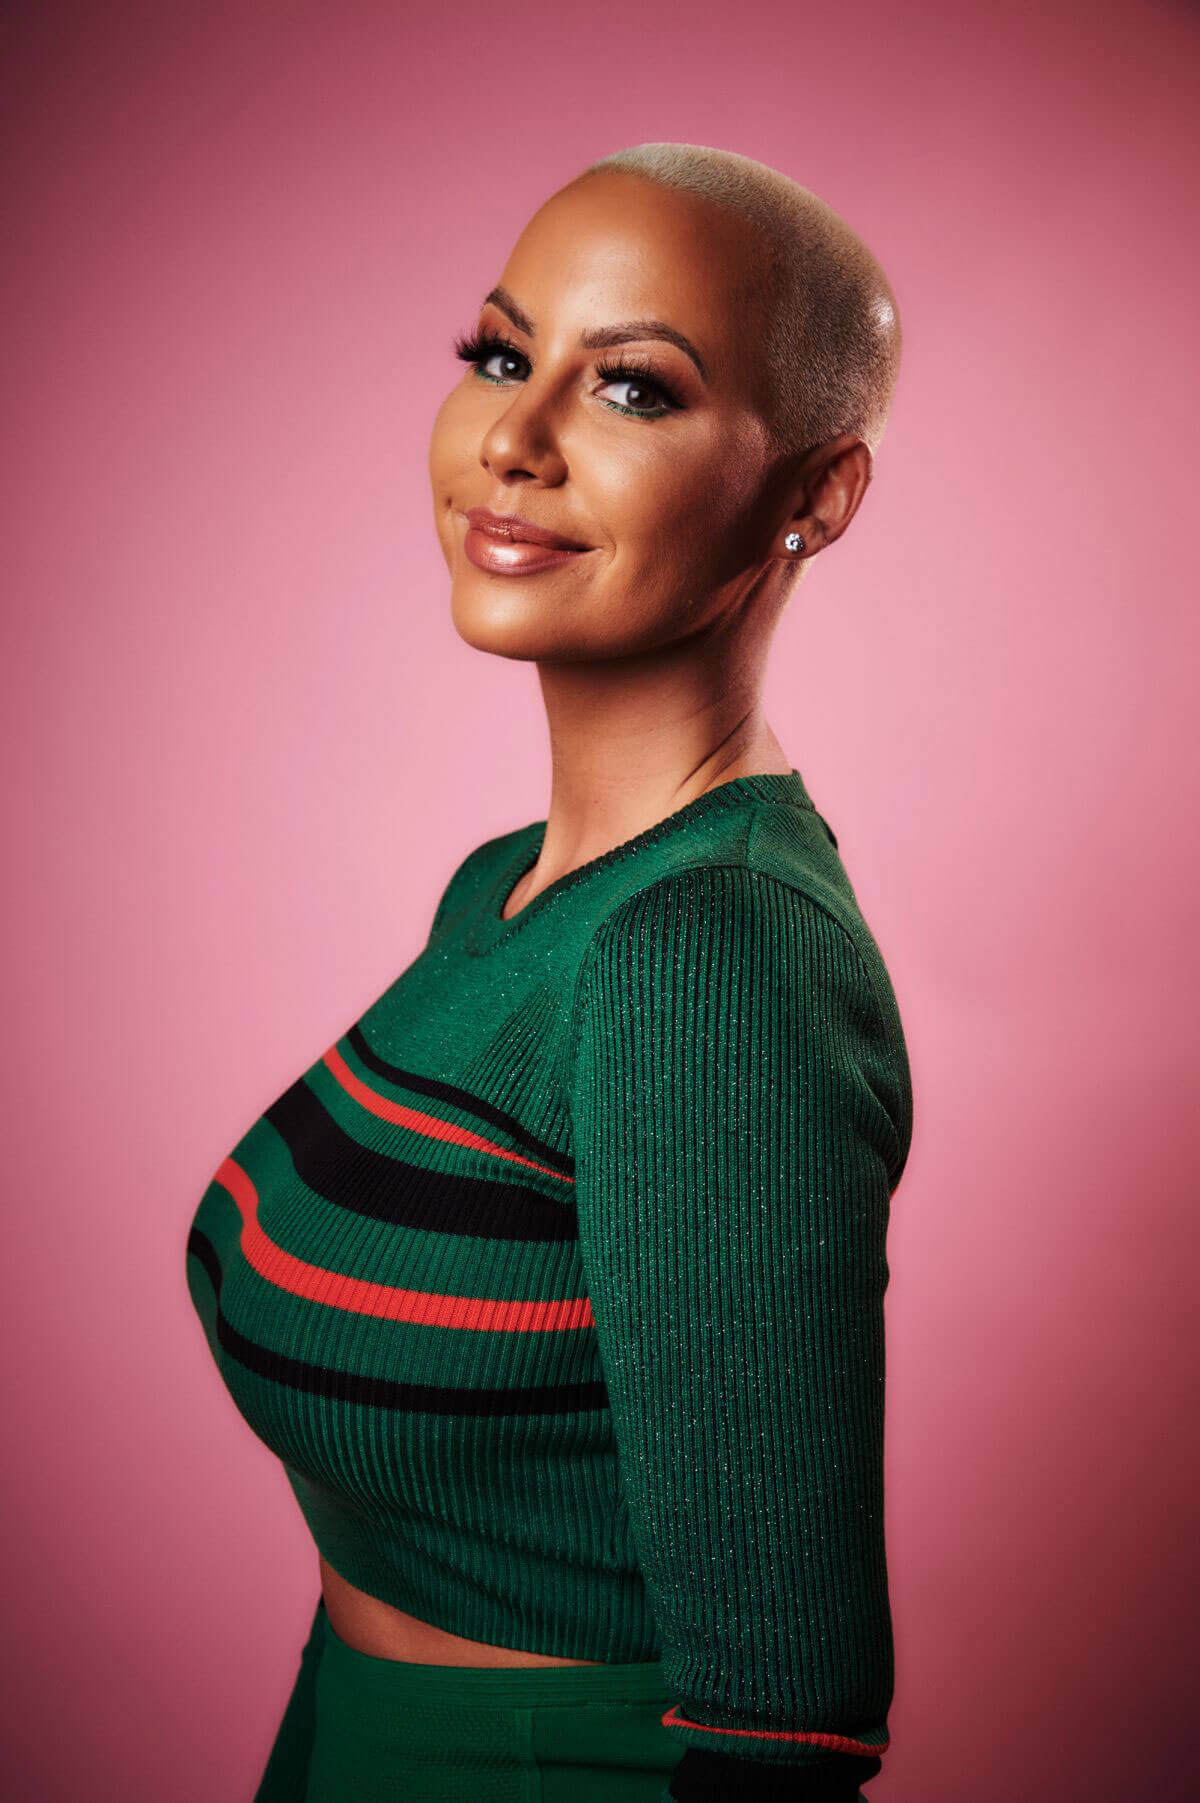 Amber Rose Photoshoot for Variety Portrait Session, 2017